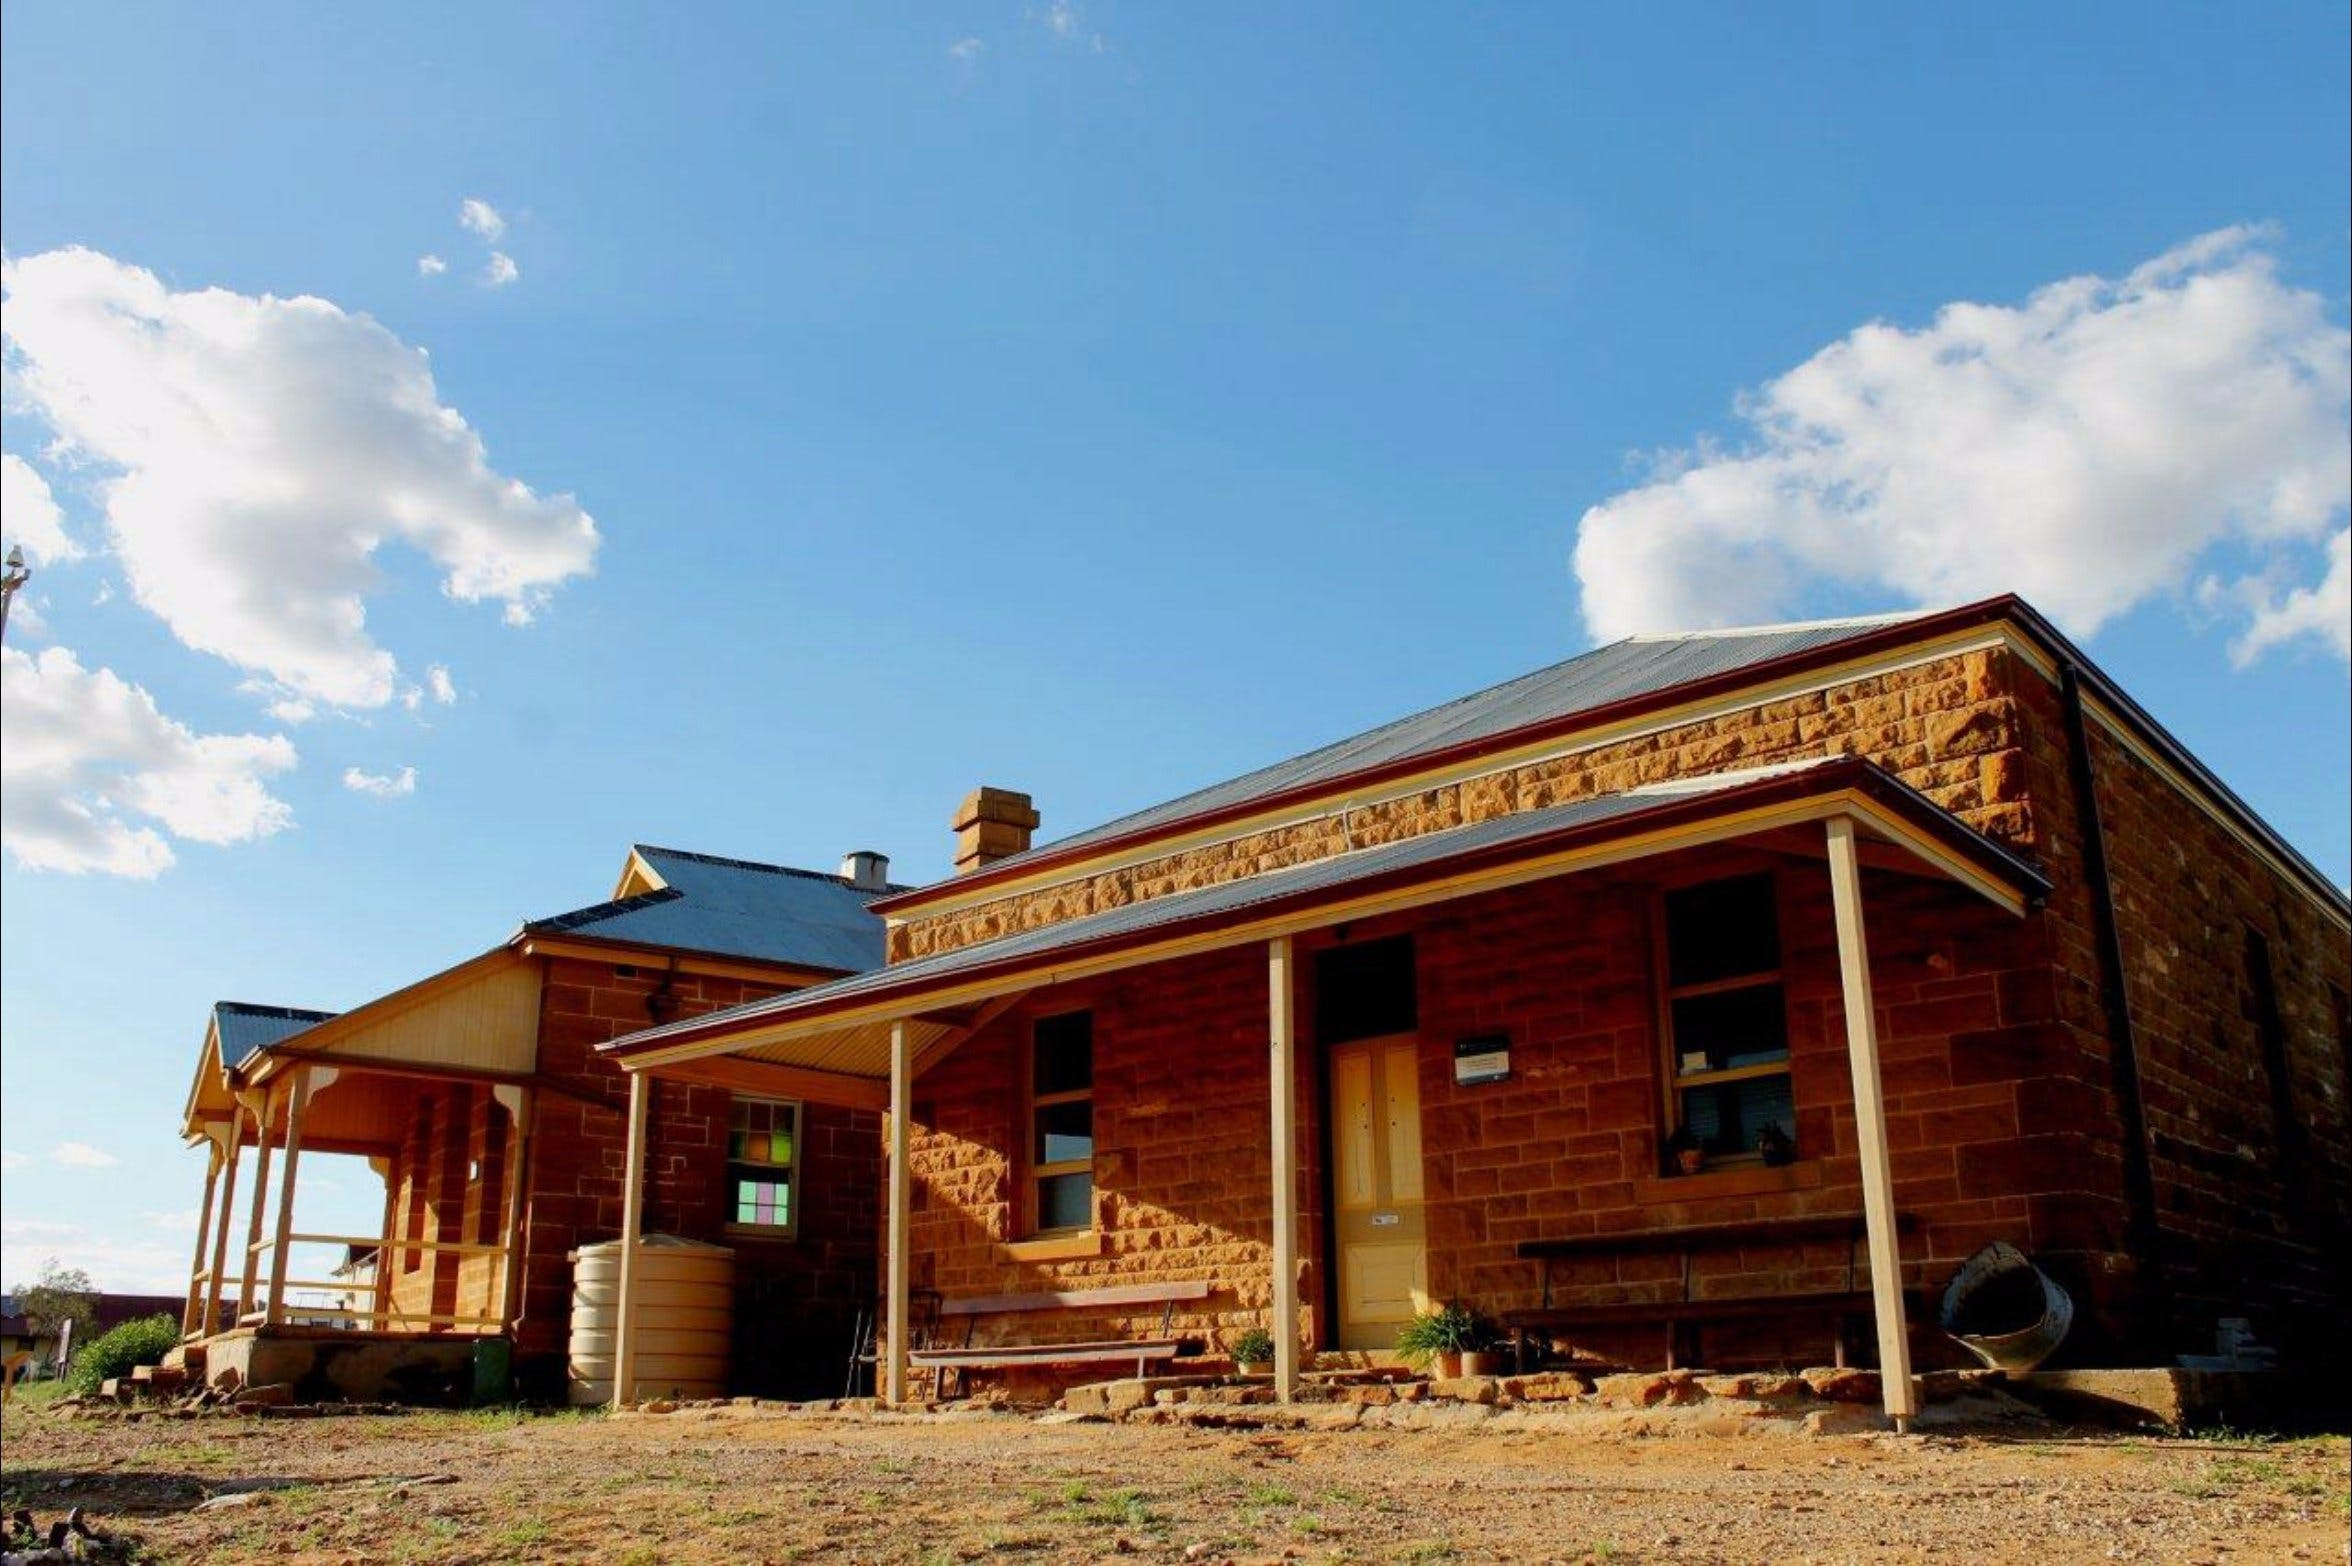 Milparinka Heritage Precinct/Milparinka Courthouse - Tourism Brisbane